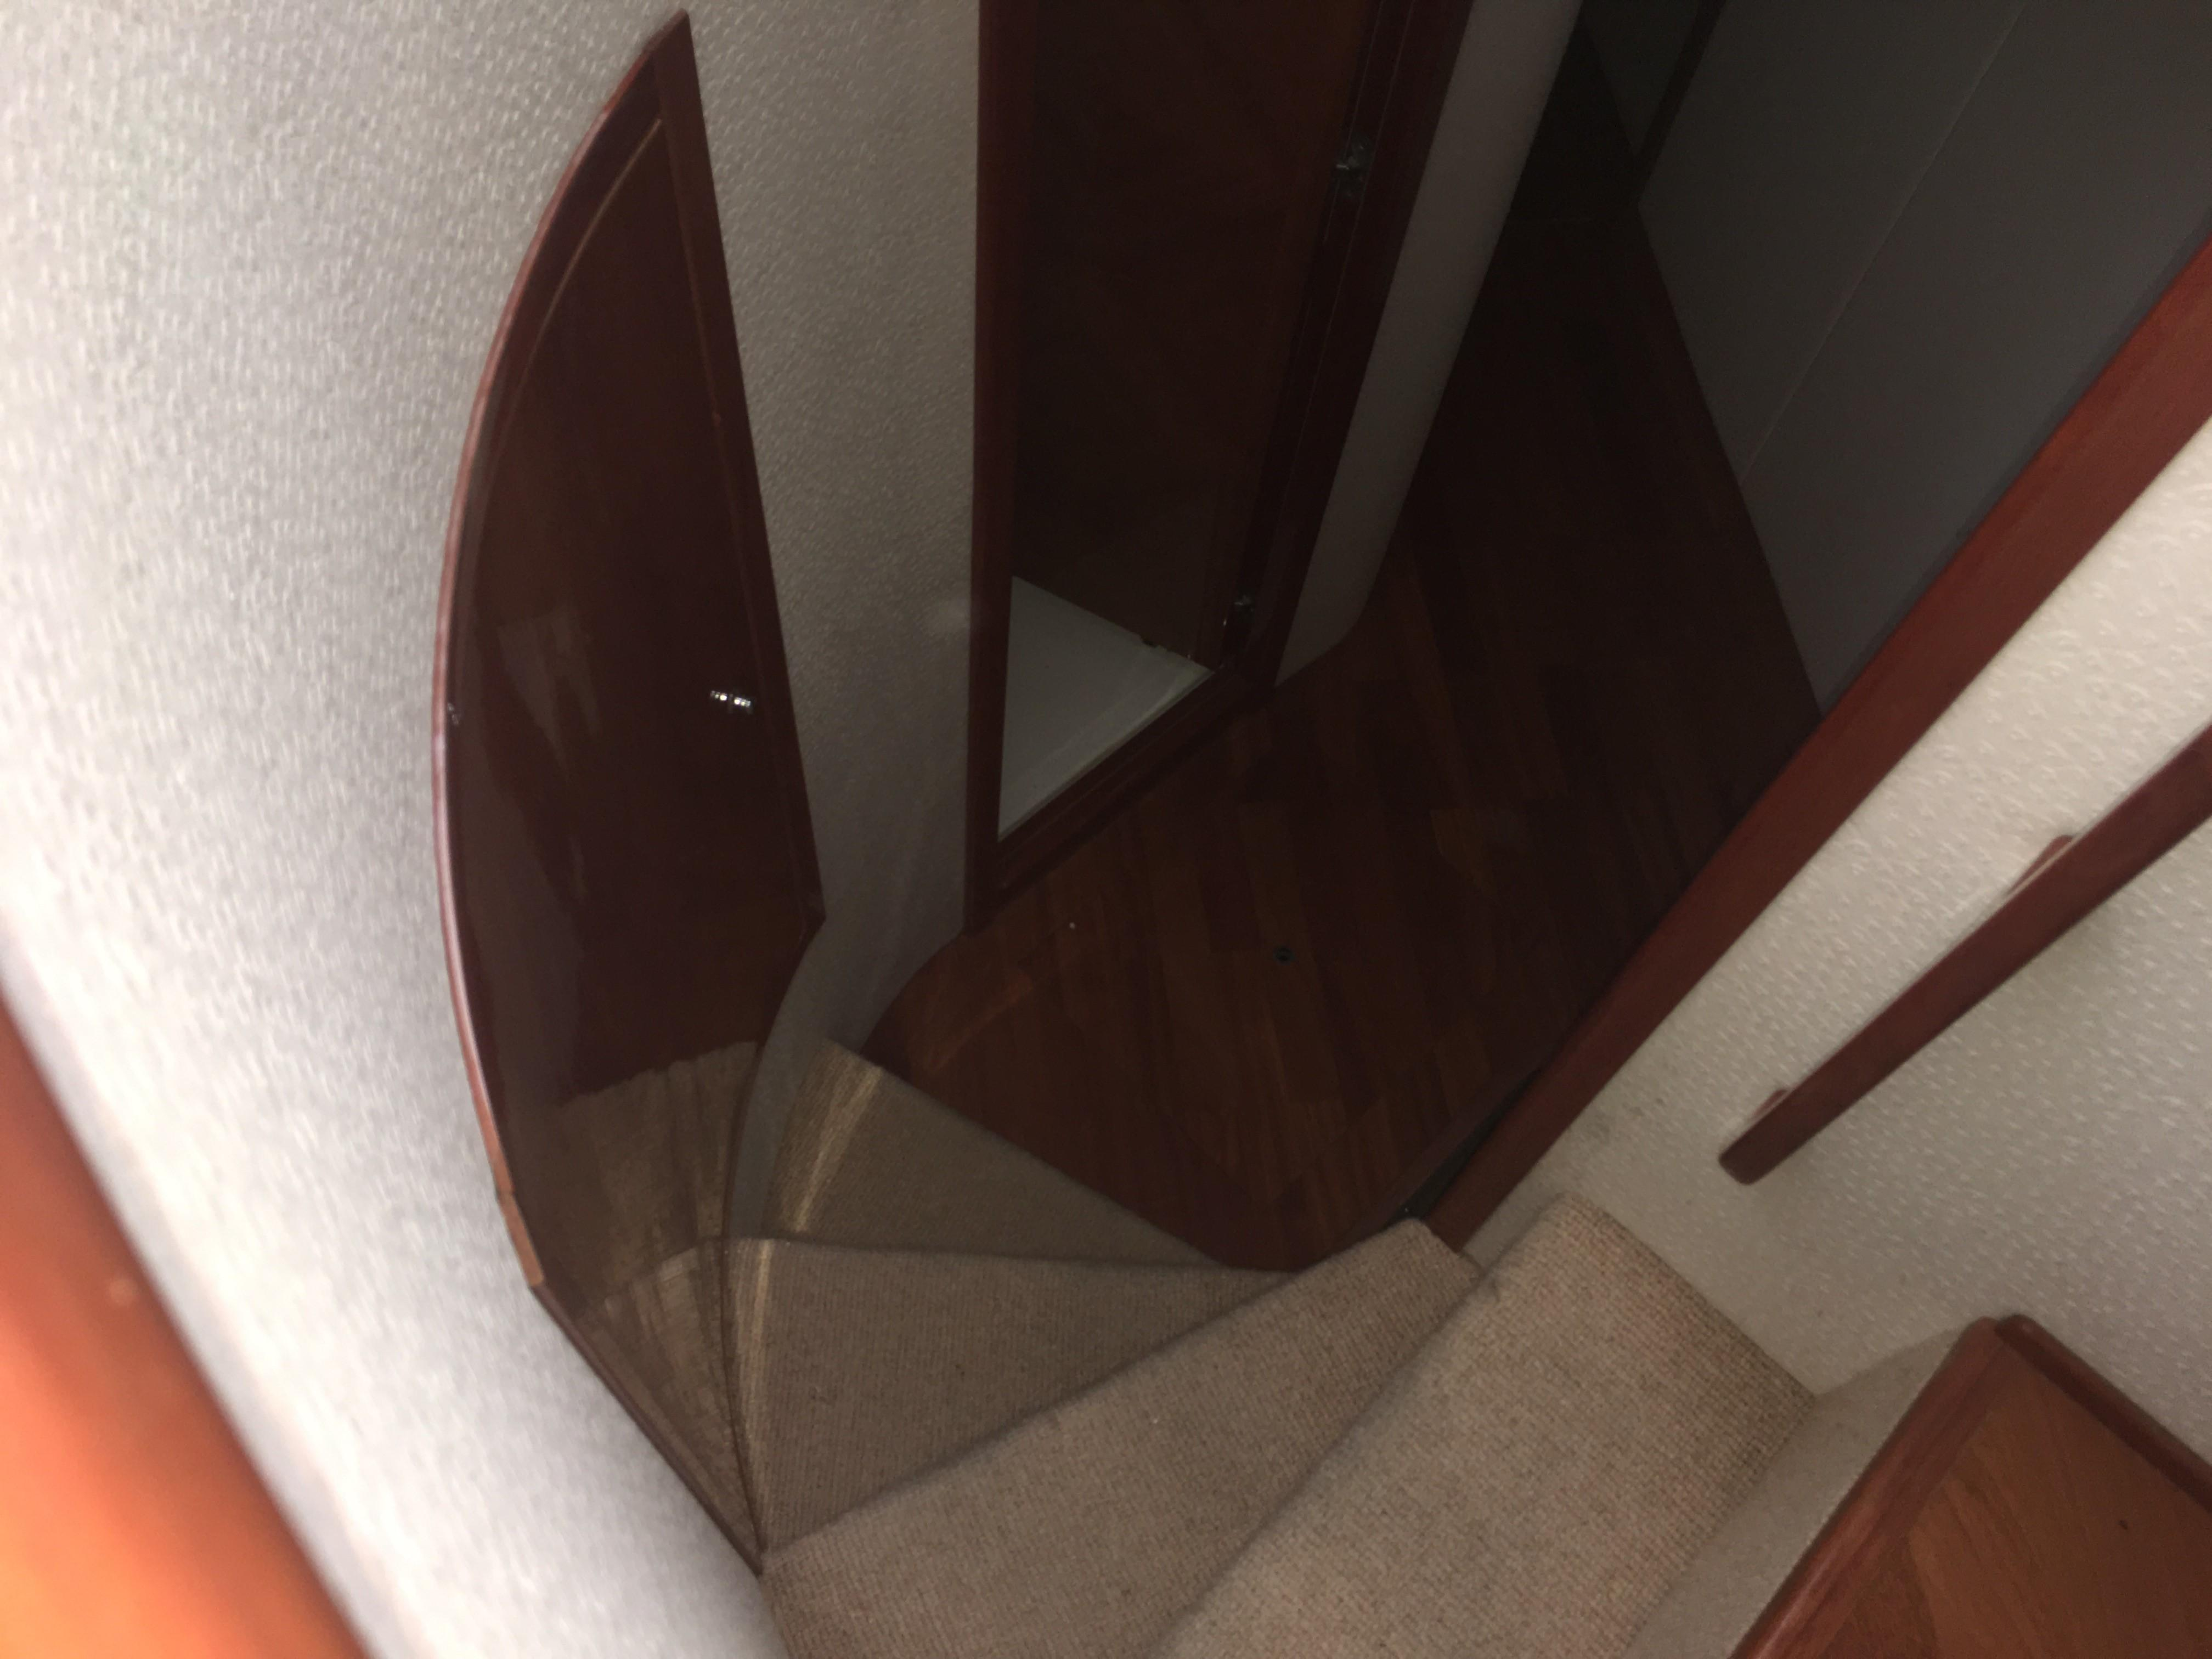 Looking down to staterooms